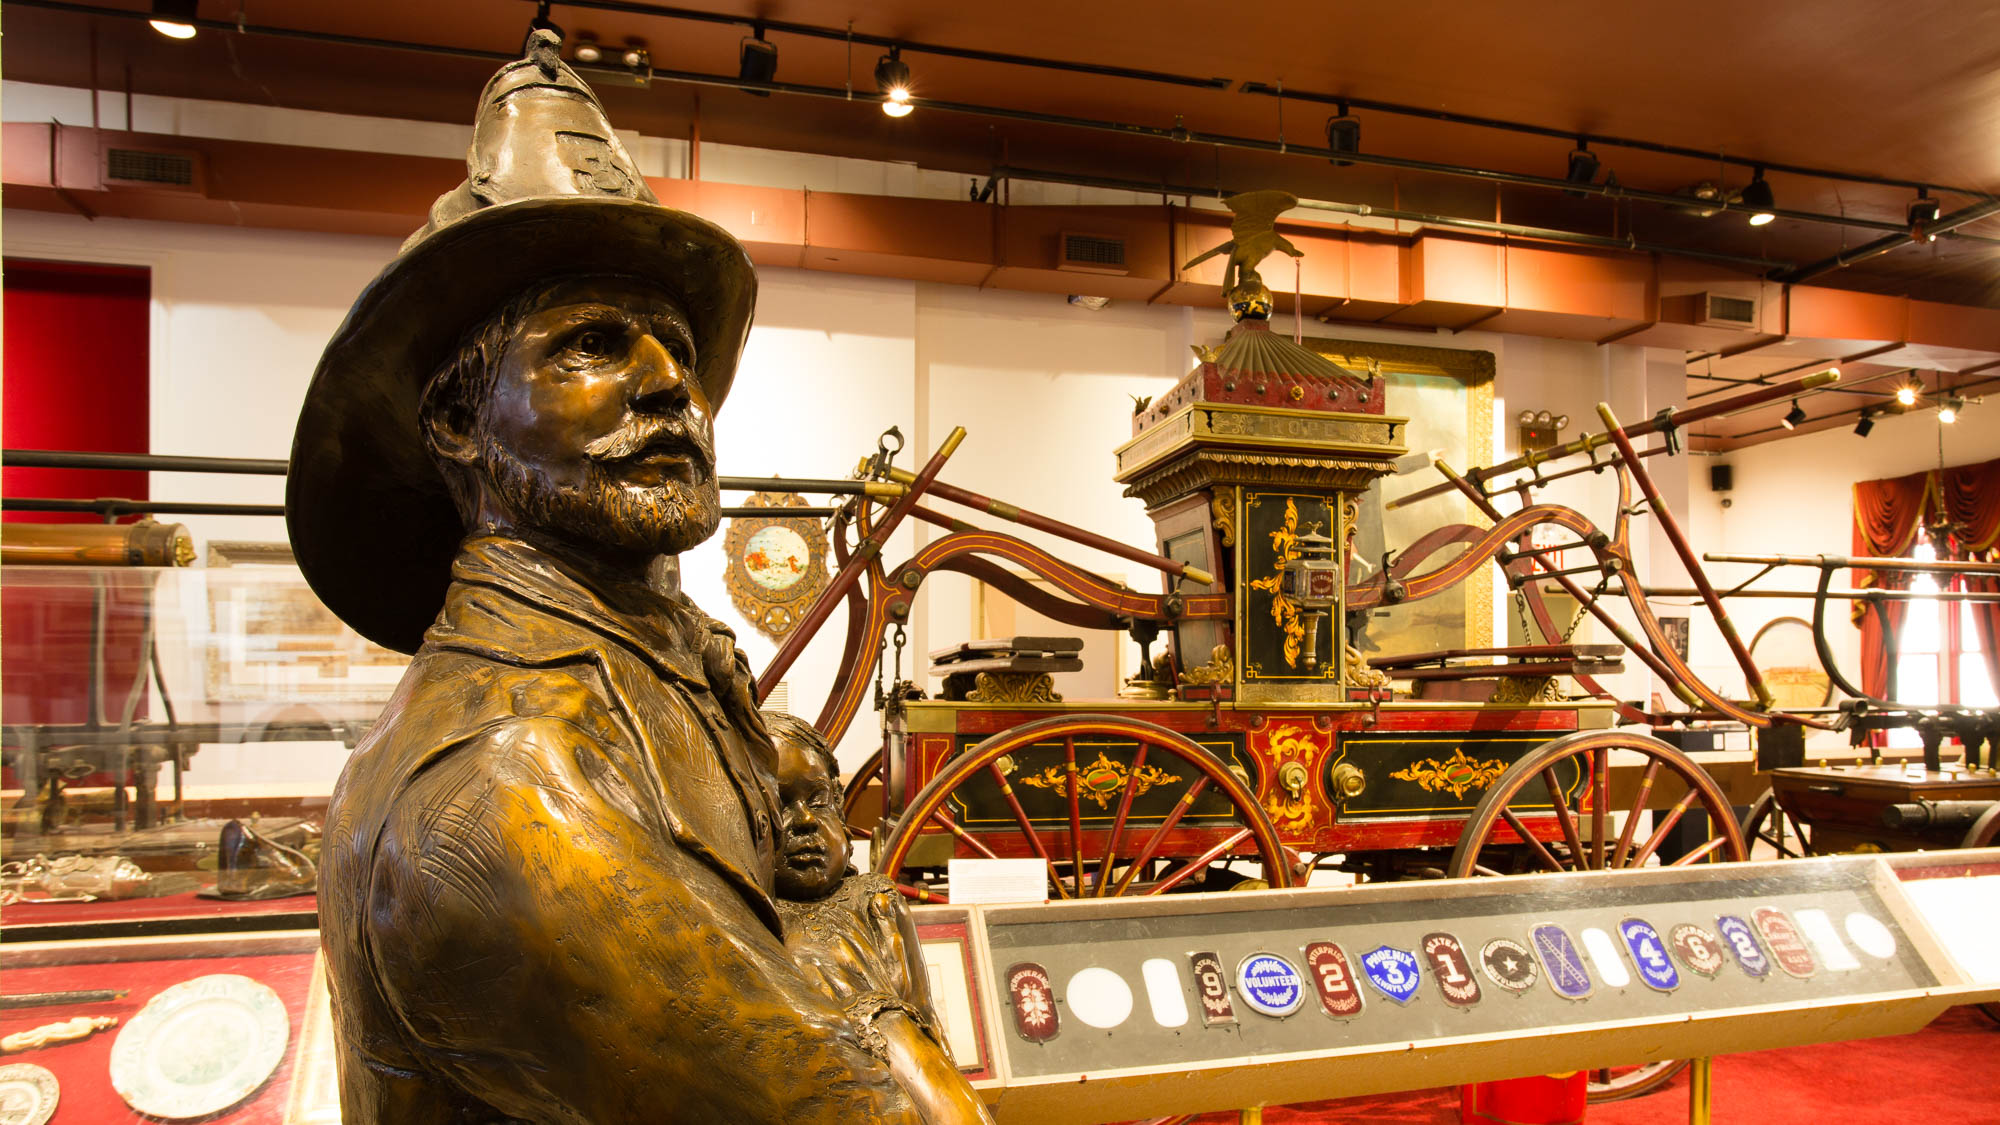 Inside the New York City Fire Museum